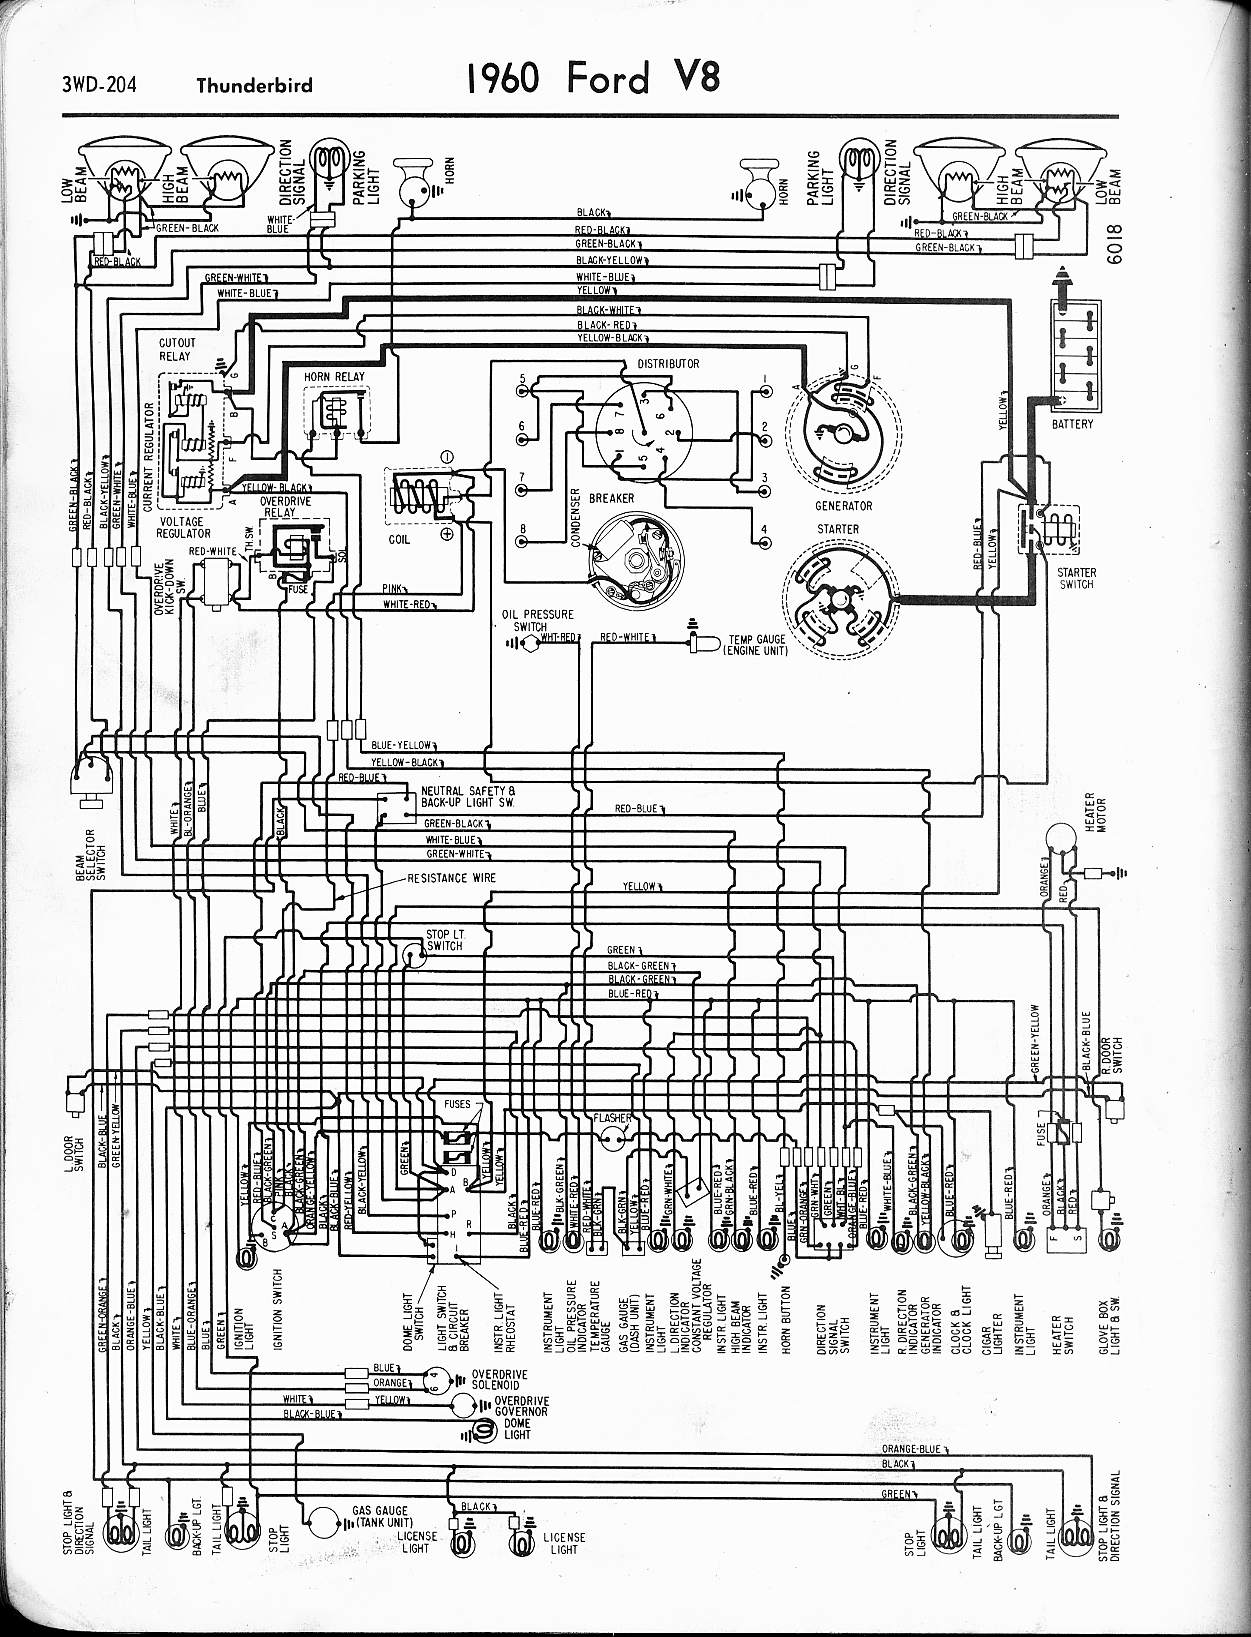 hight resolution of 1956 mga wiring diagram wiring diagram third level1960 mga wiring diagram wiring library 1999 ford f